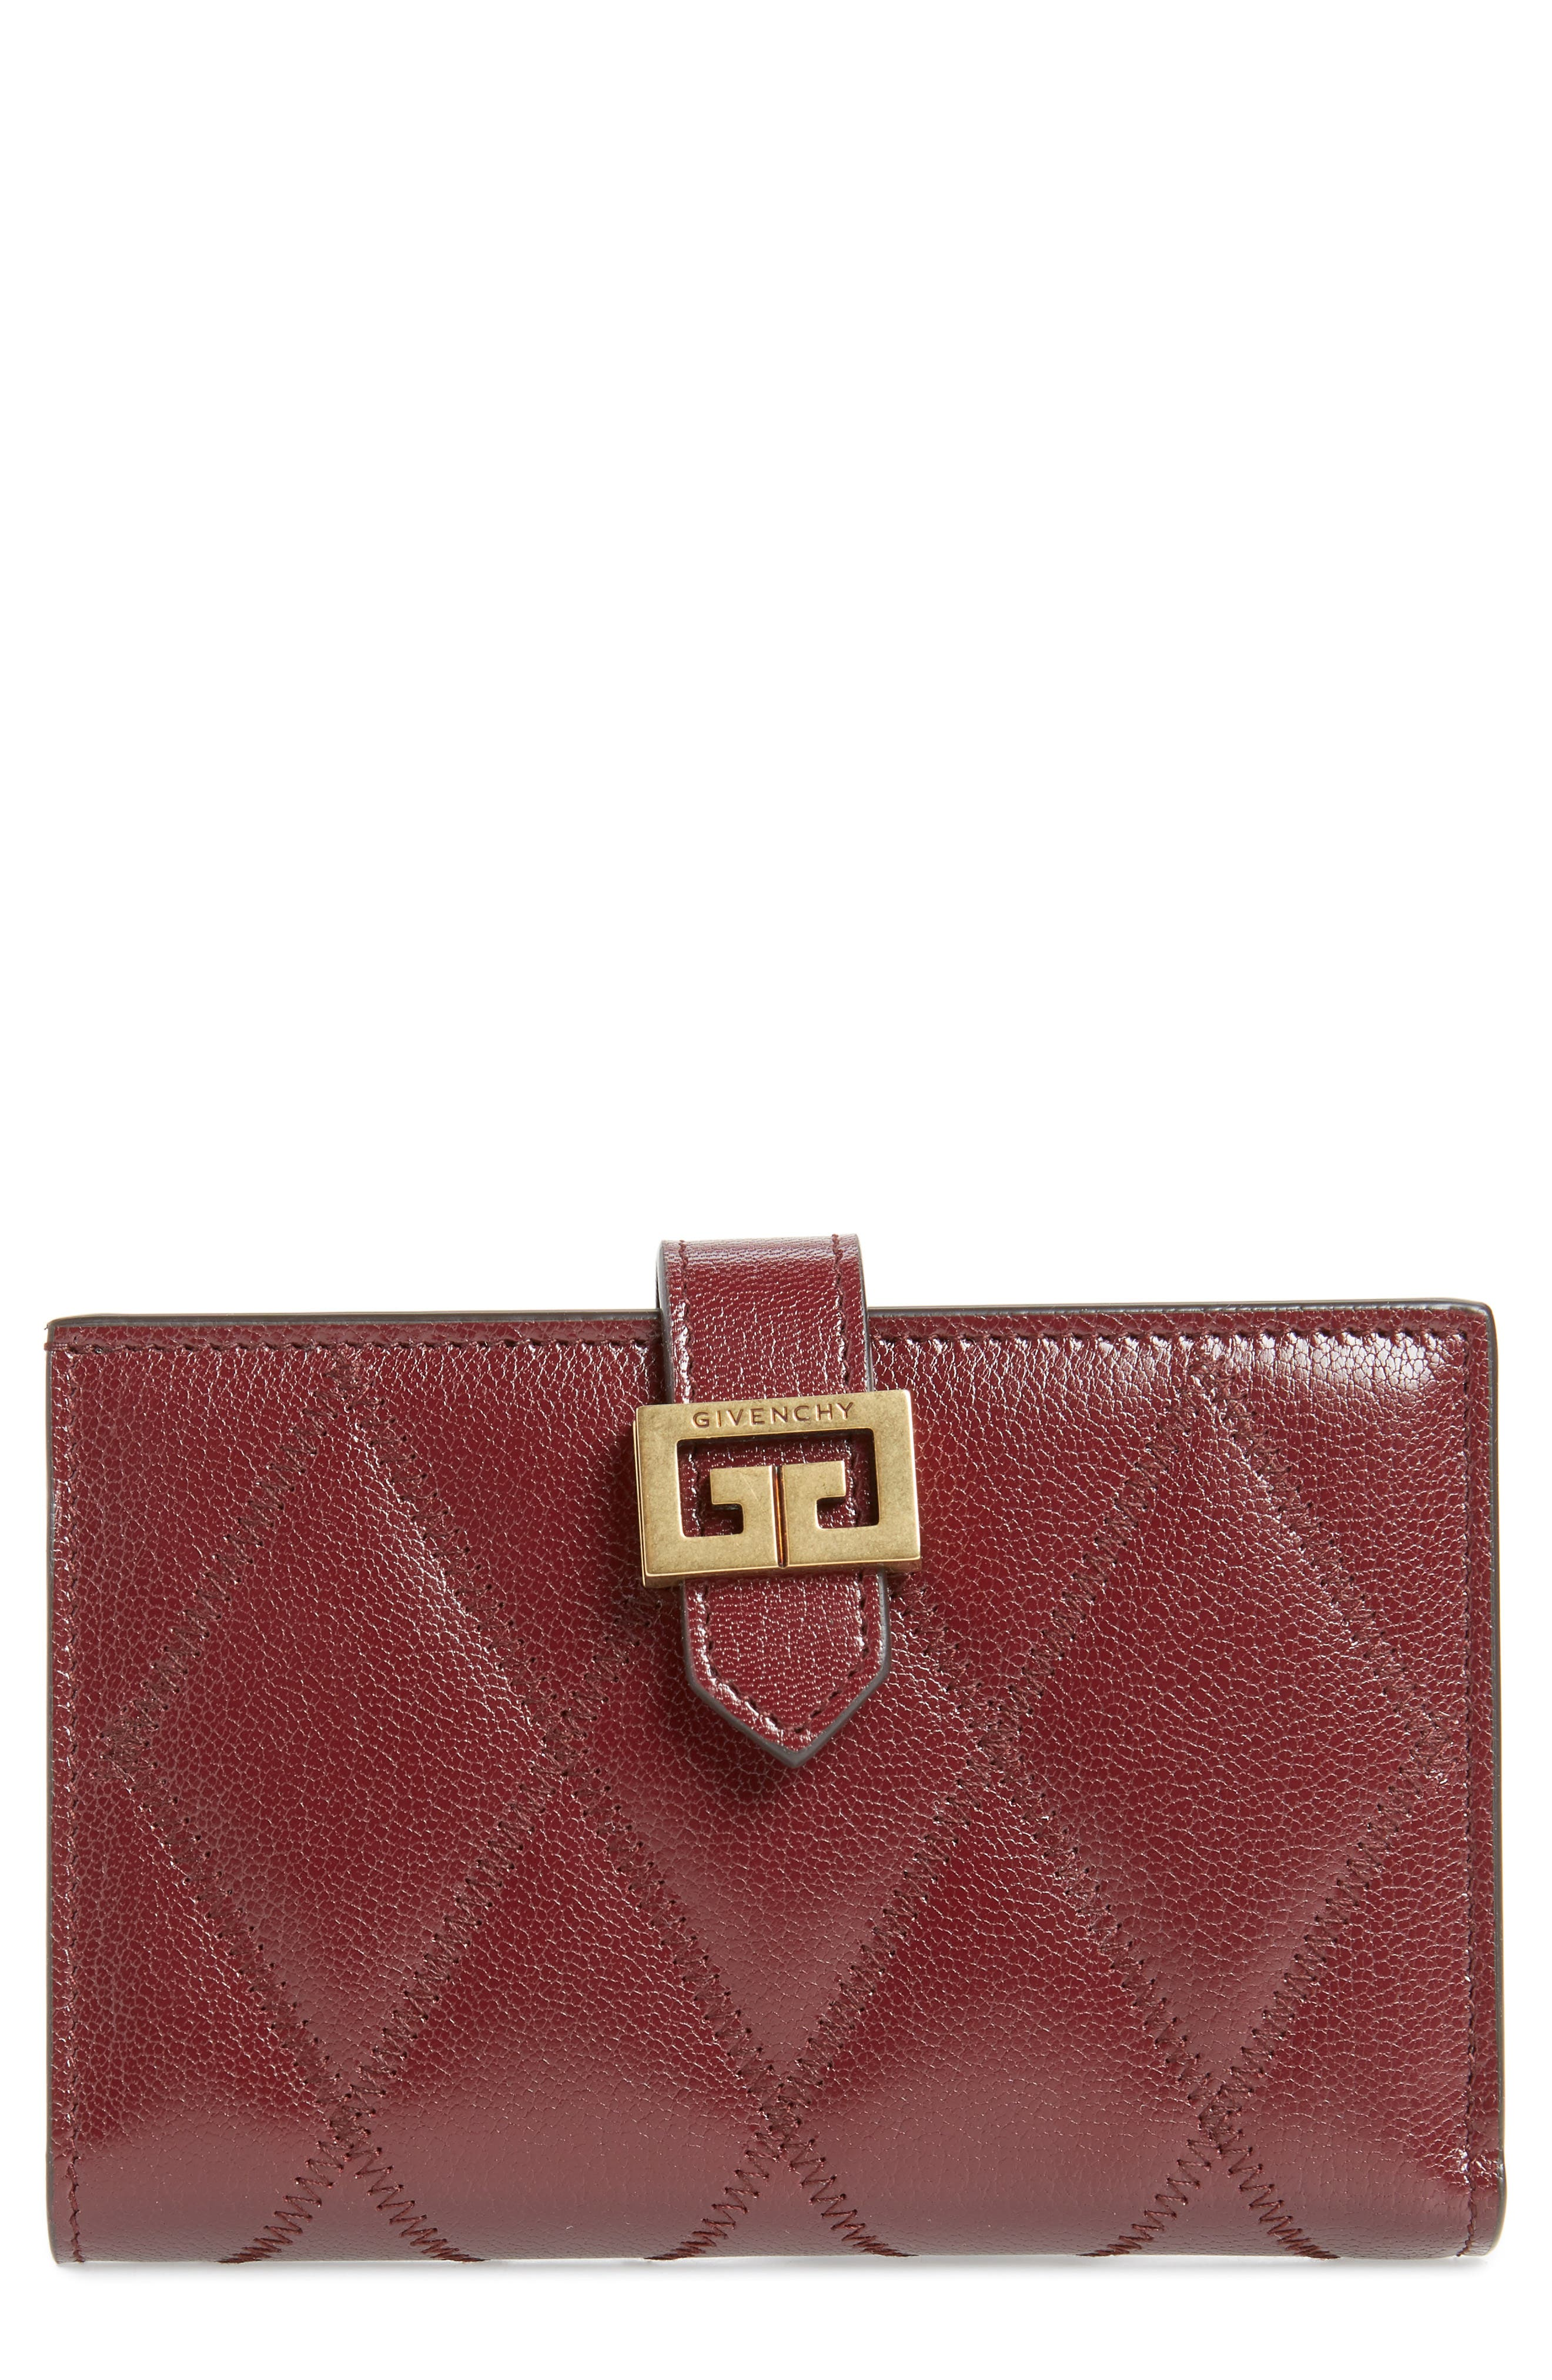 Medium GV3 Diamond Quilted Leather Wallet,                         Main,                         color, AUBERGINE